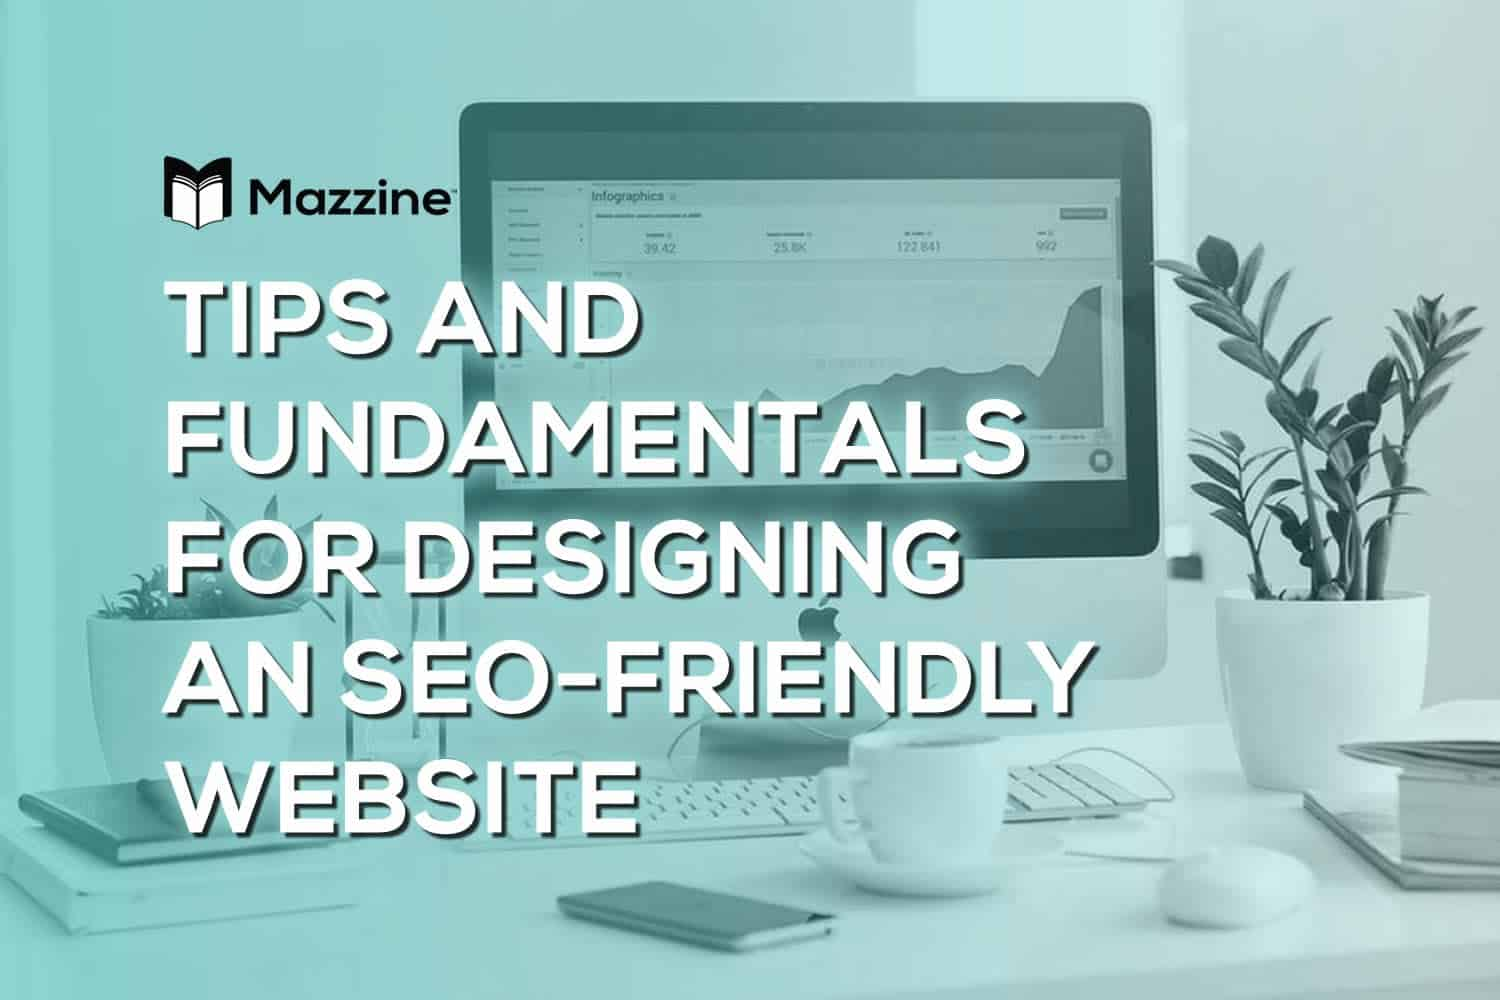 Tips and Fundamentals for Designing an SEO-Friendly Website